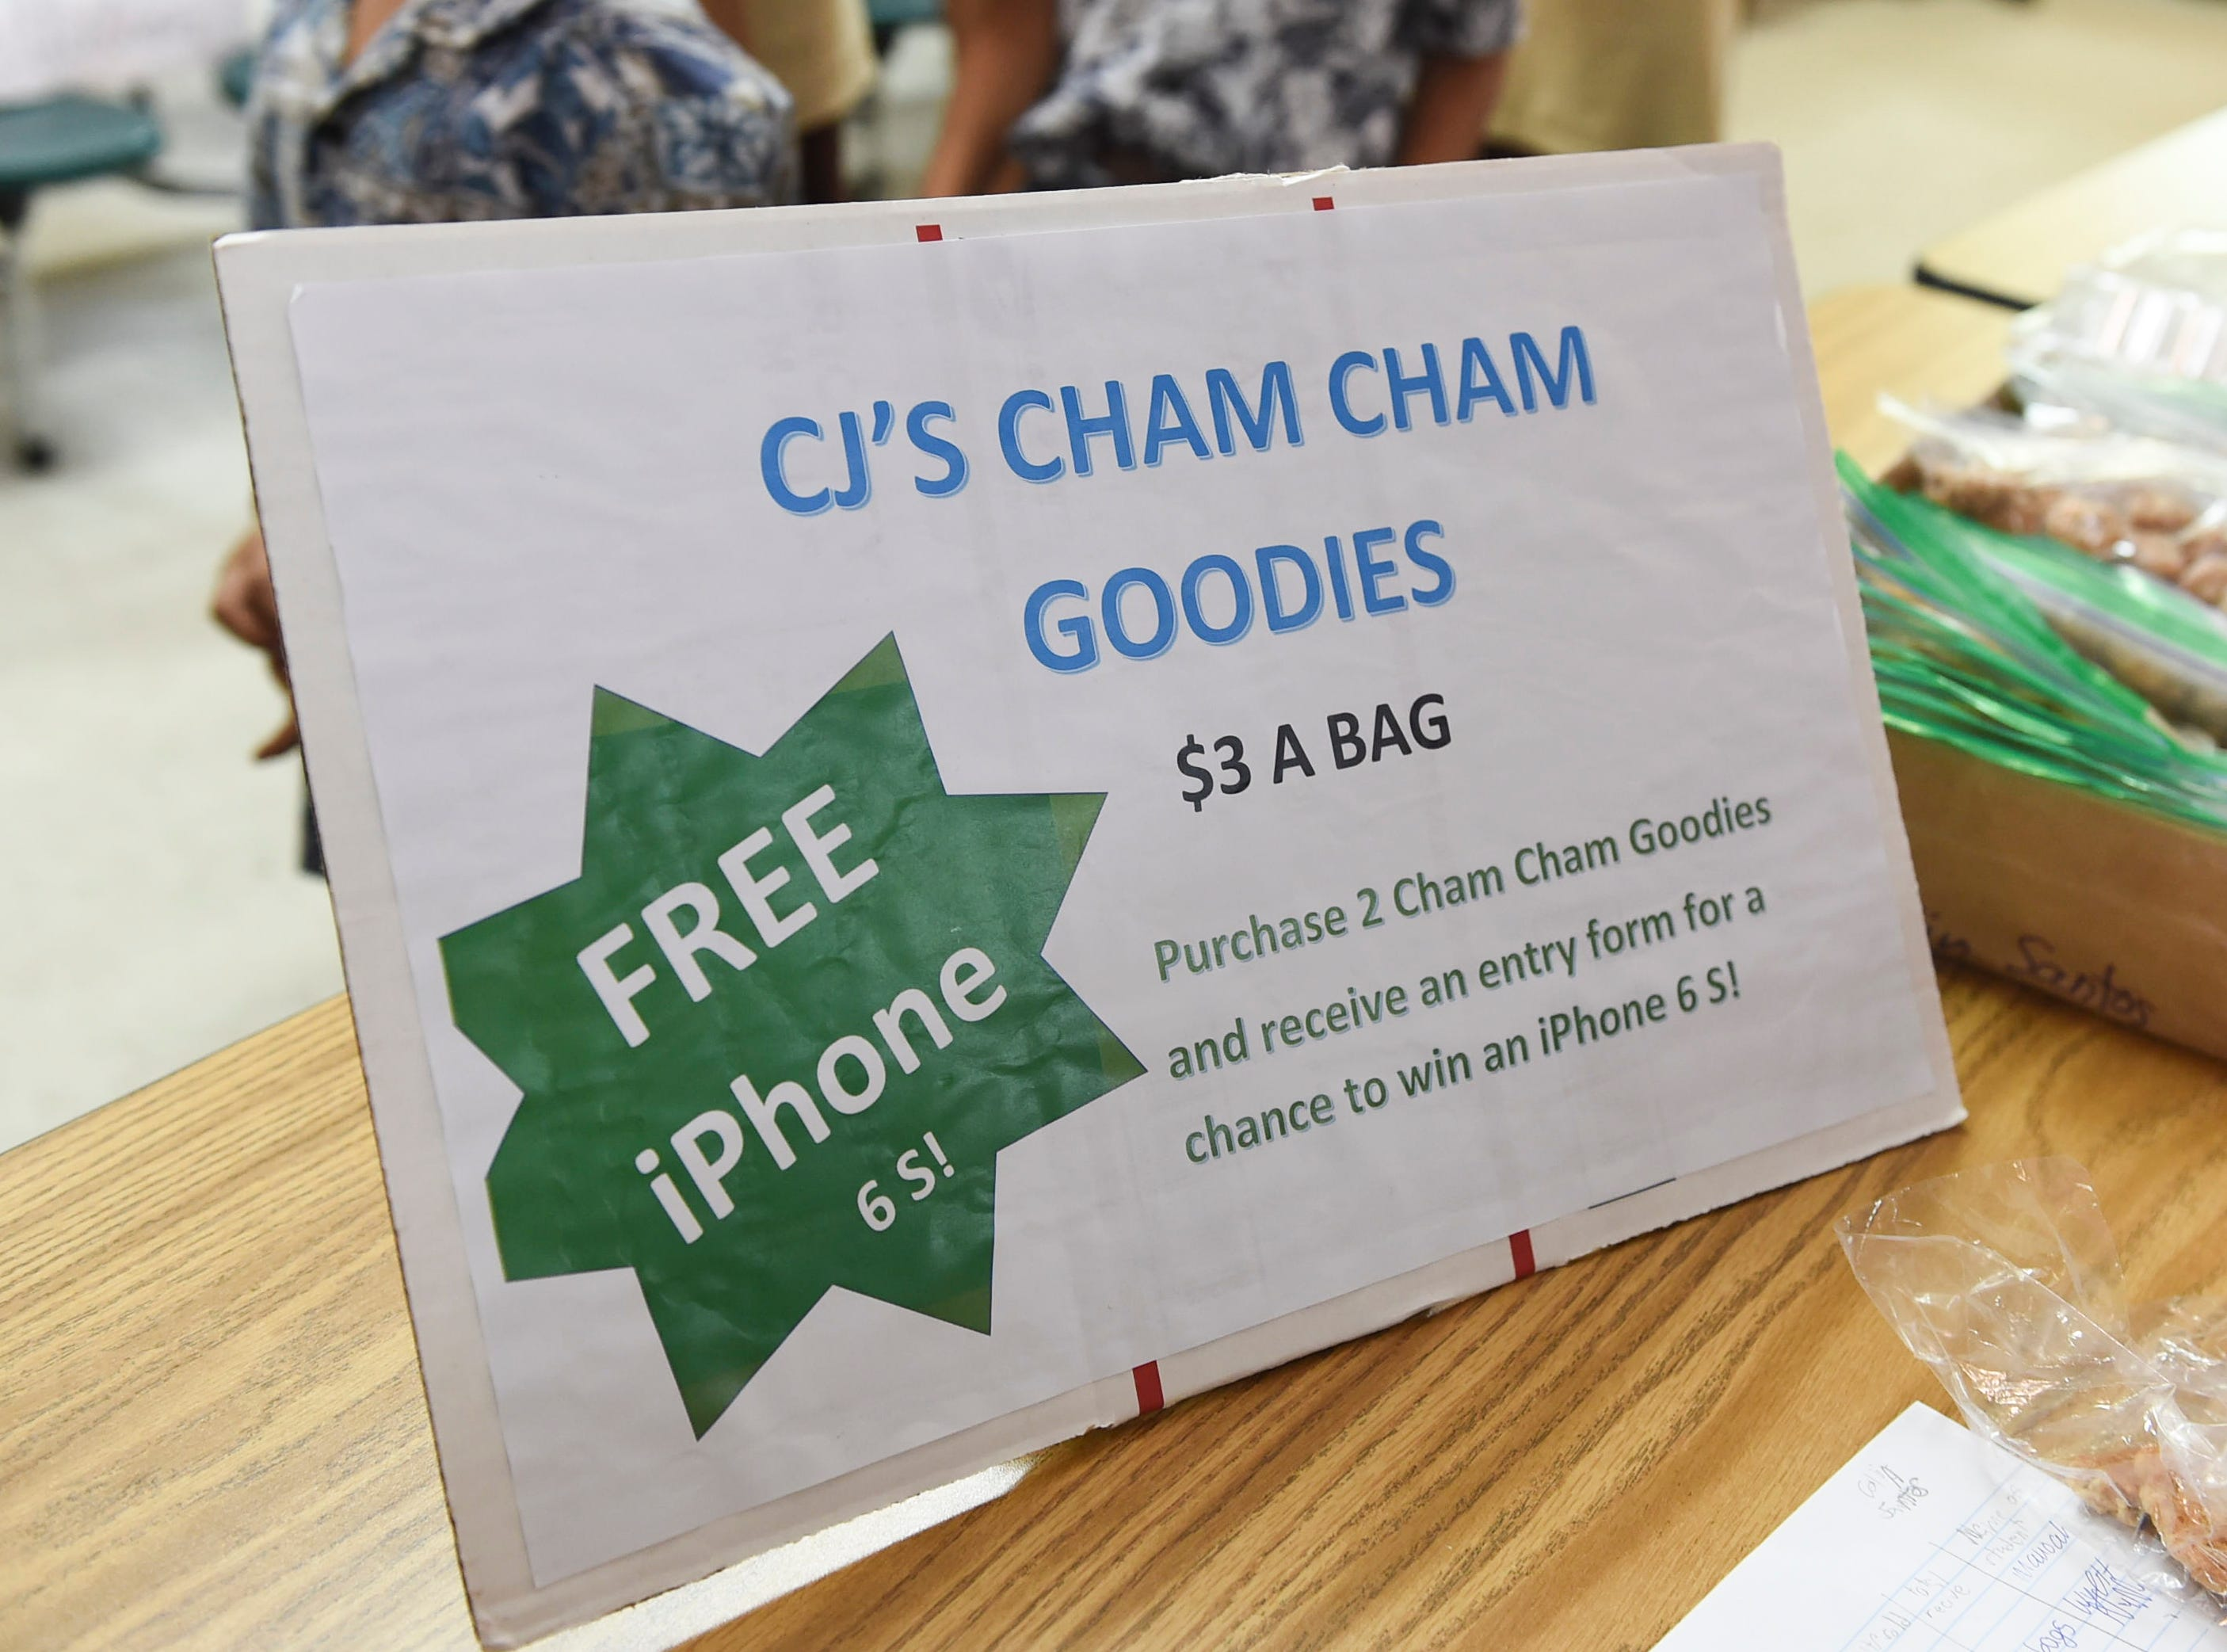 CJ's Cham Cham Goodies stand during the 5th Annual Ysrael School of Business Retail Bazaar and Entrepreneur Fair at Our Lady of Mount Carmel Catholic School in Agat, Jan. 18, 2019.